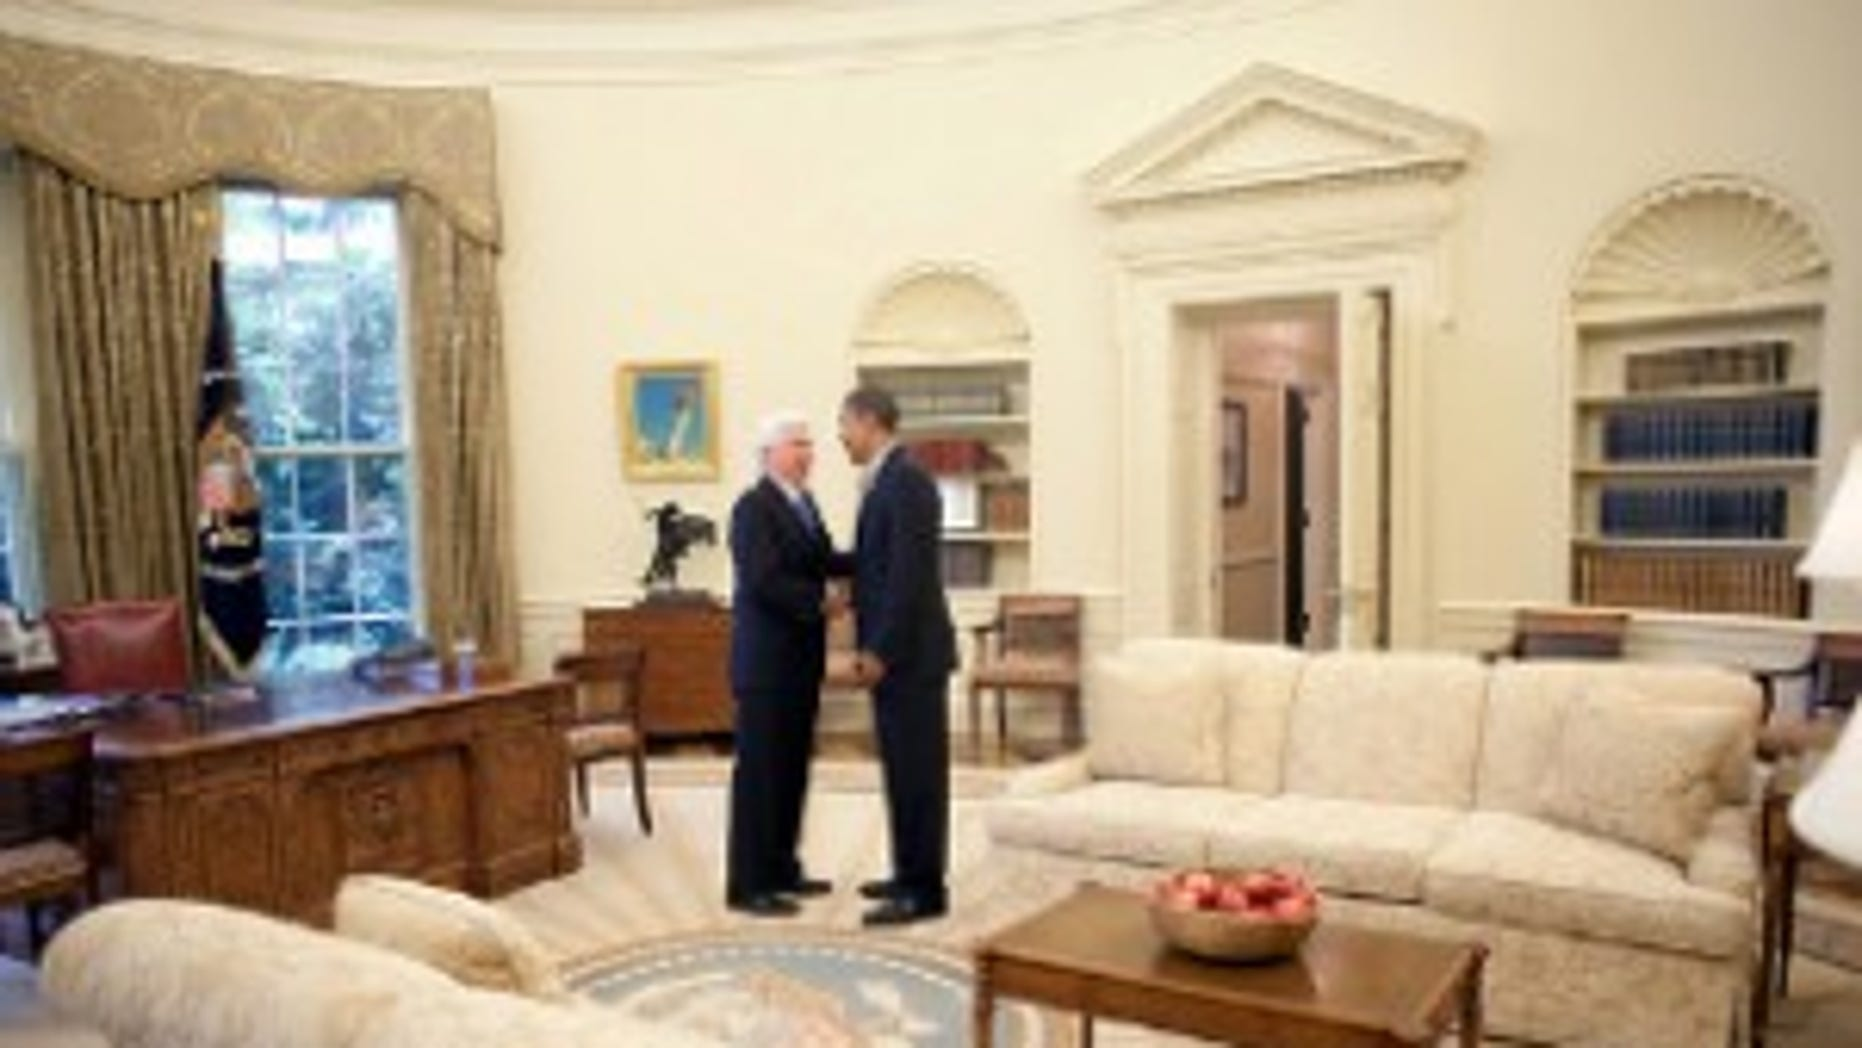 President Obama talks with Sen. Chris Dodd (D-CT) in the Oval Office following a health care event in the Rose Garden of the White House July 15, 2009 (WH Photo)